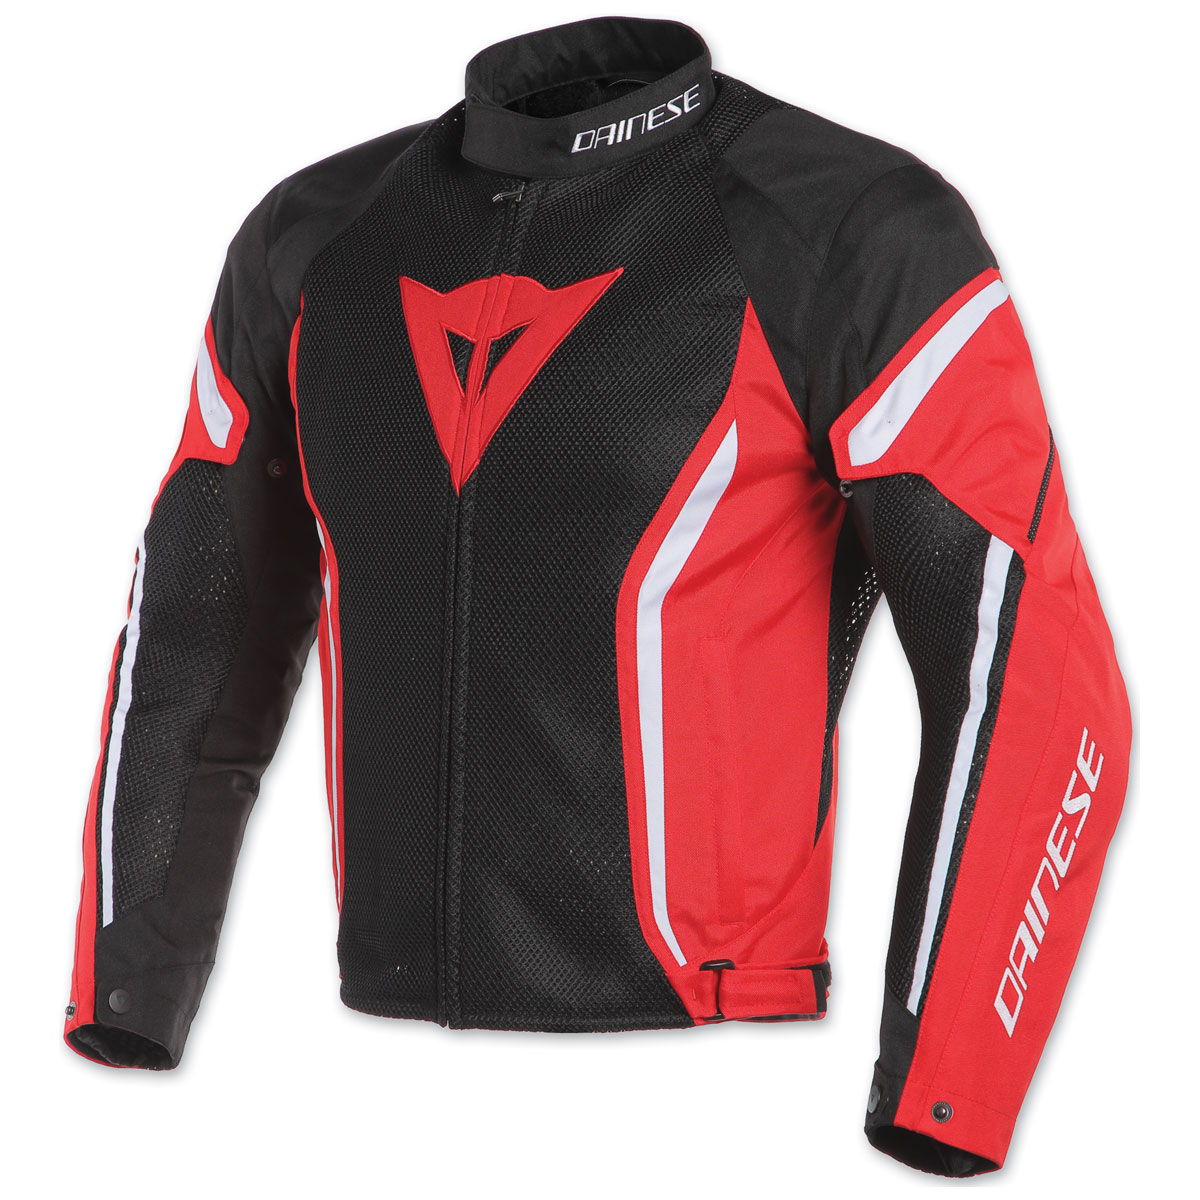 Dainese Men's Air Crono 2 Black/Red/White Textile Jacket